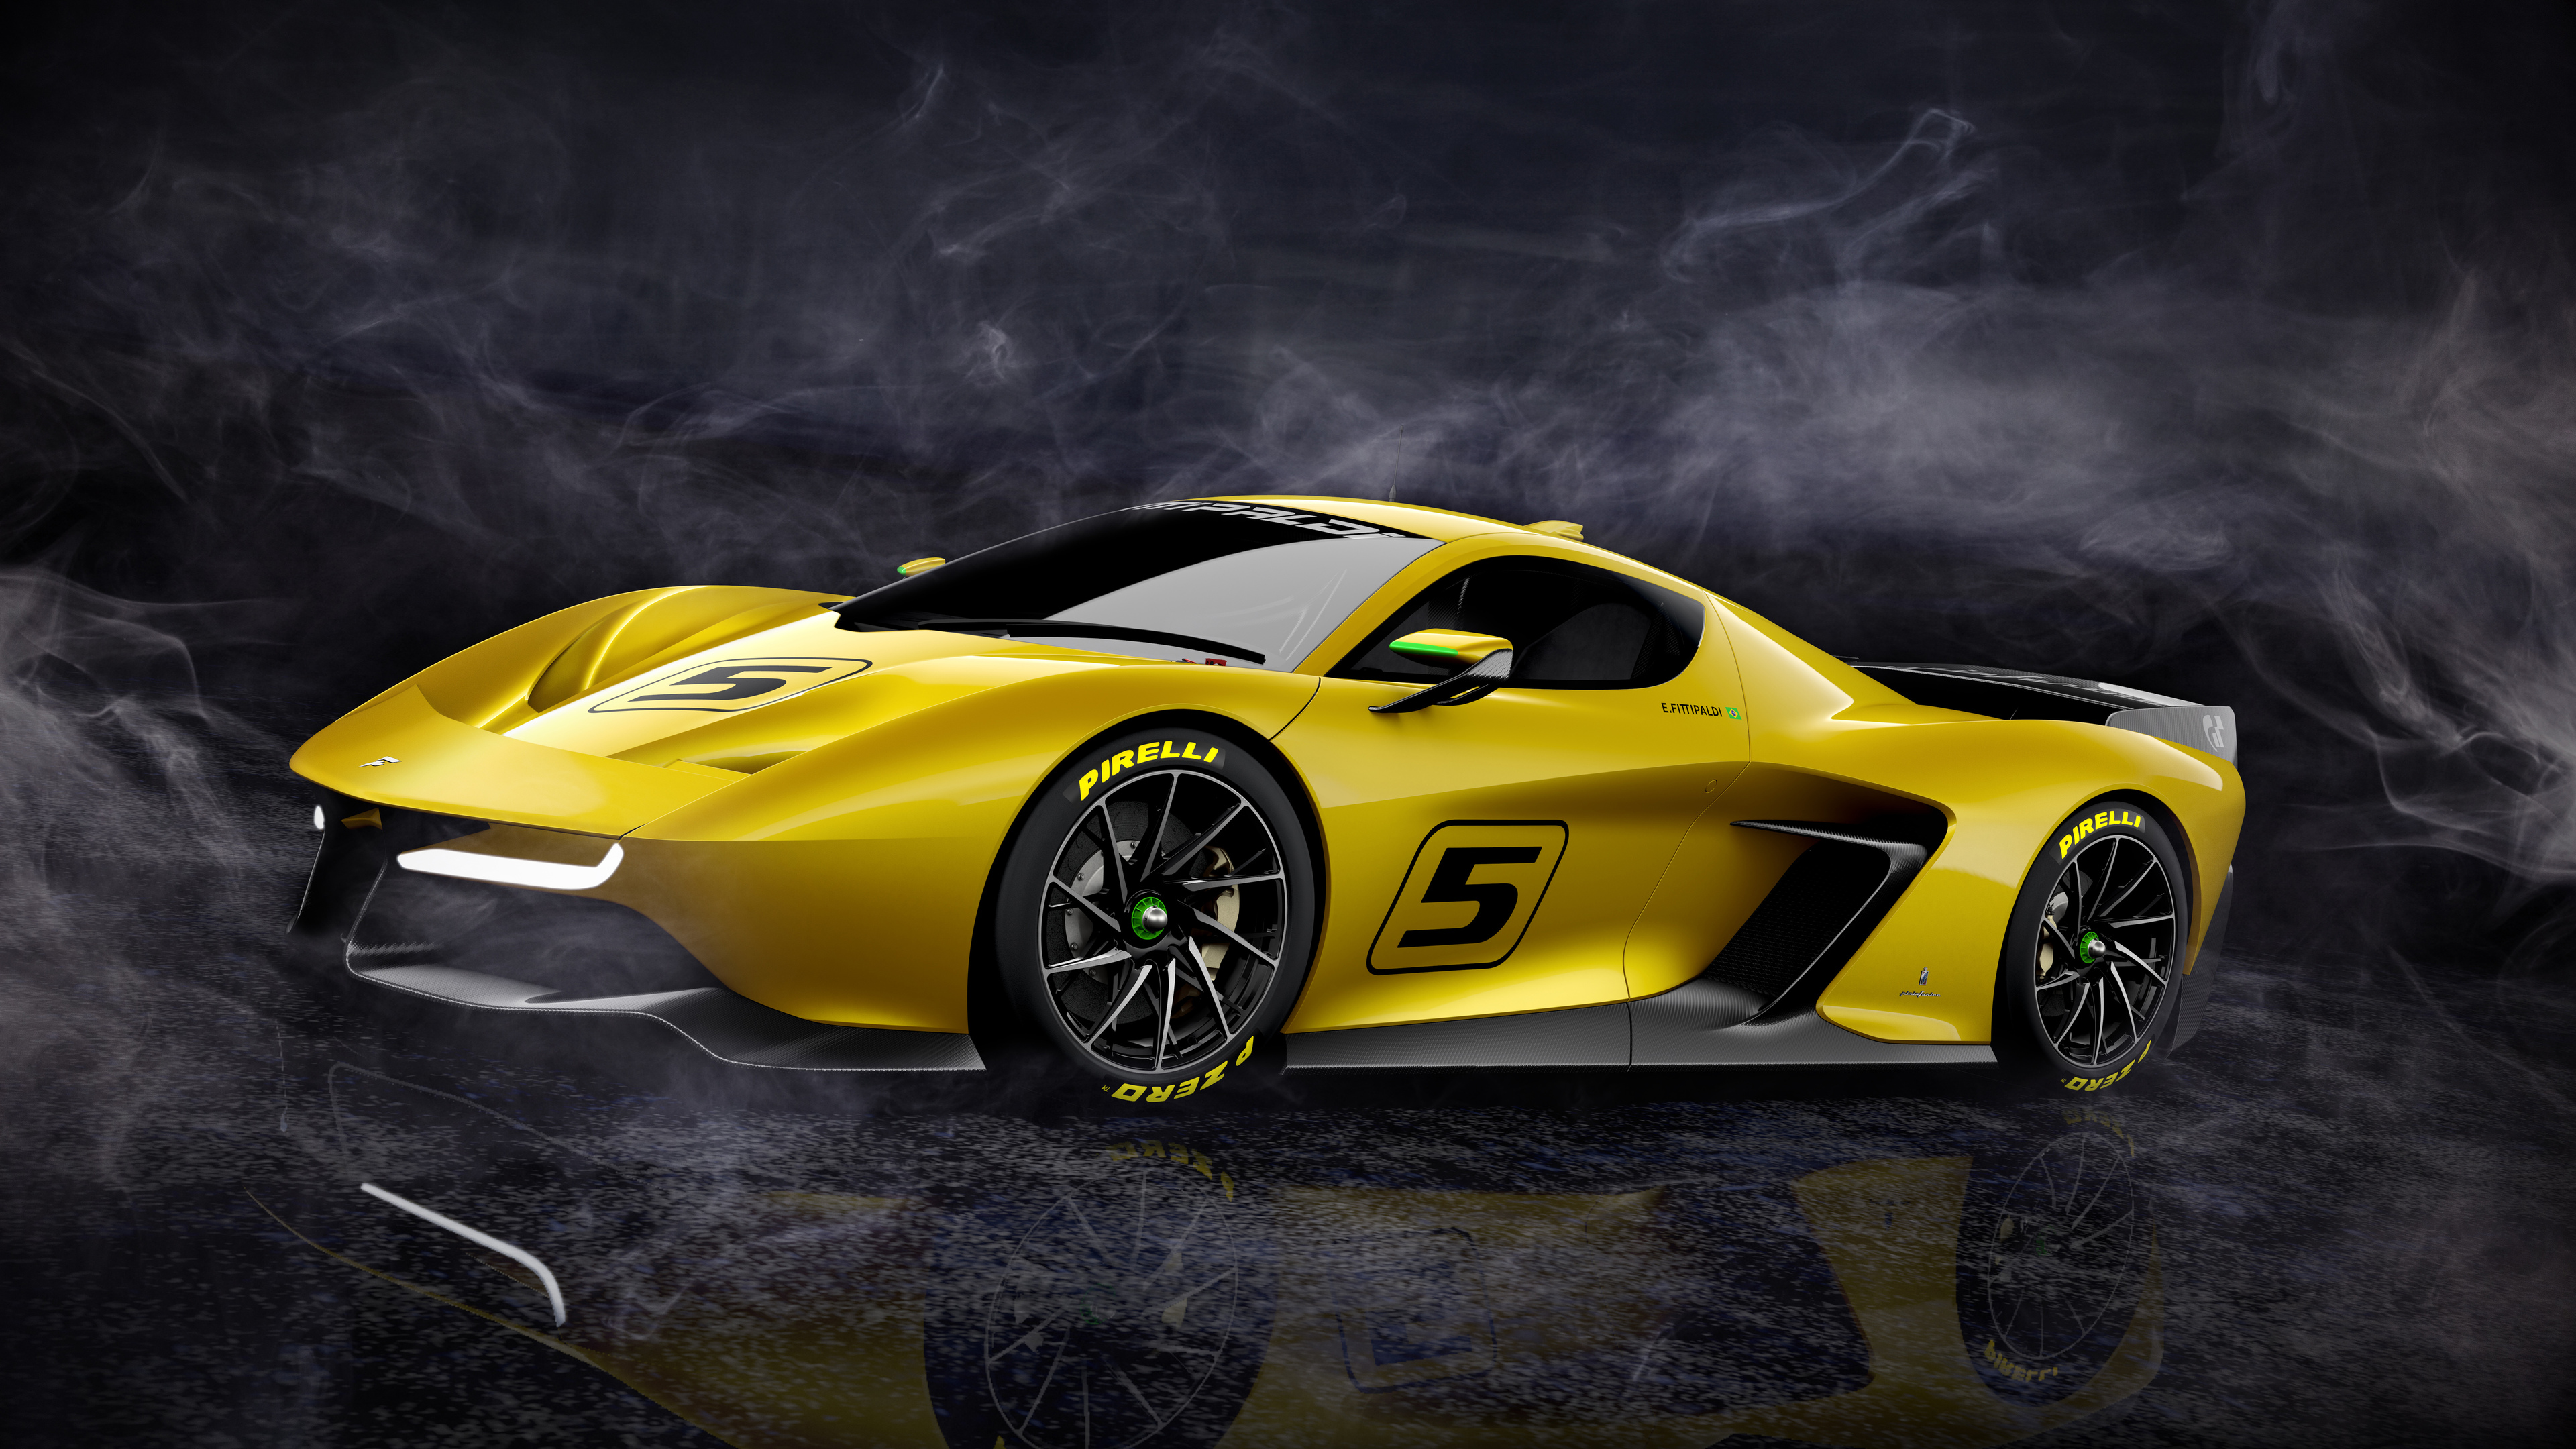 fittipaldi ef7 vision gran turismo limited edition 4k 5k 1539114822 - Fittipaldi EF7 Vision Gran Turismo Limited Edition 4k 5k - hd-wallpapers, fittipaldi e47 vision gran turismo wallpapers, cars wallpapers, 5k wallpapers, 4k-wallpapers, 2017 cars wallpapers